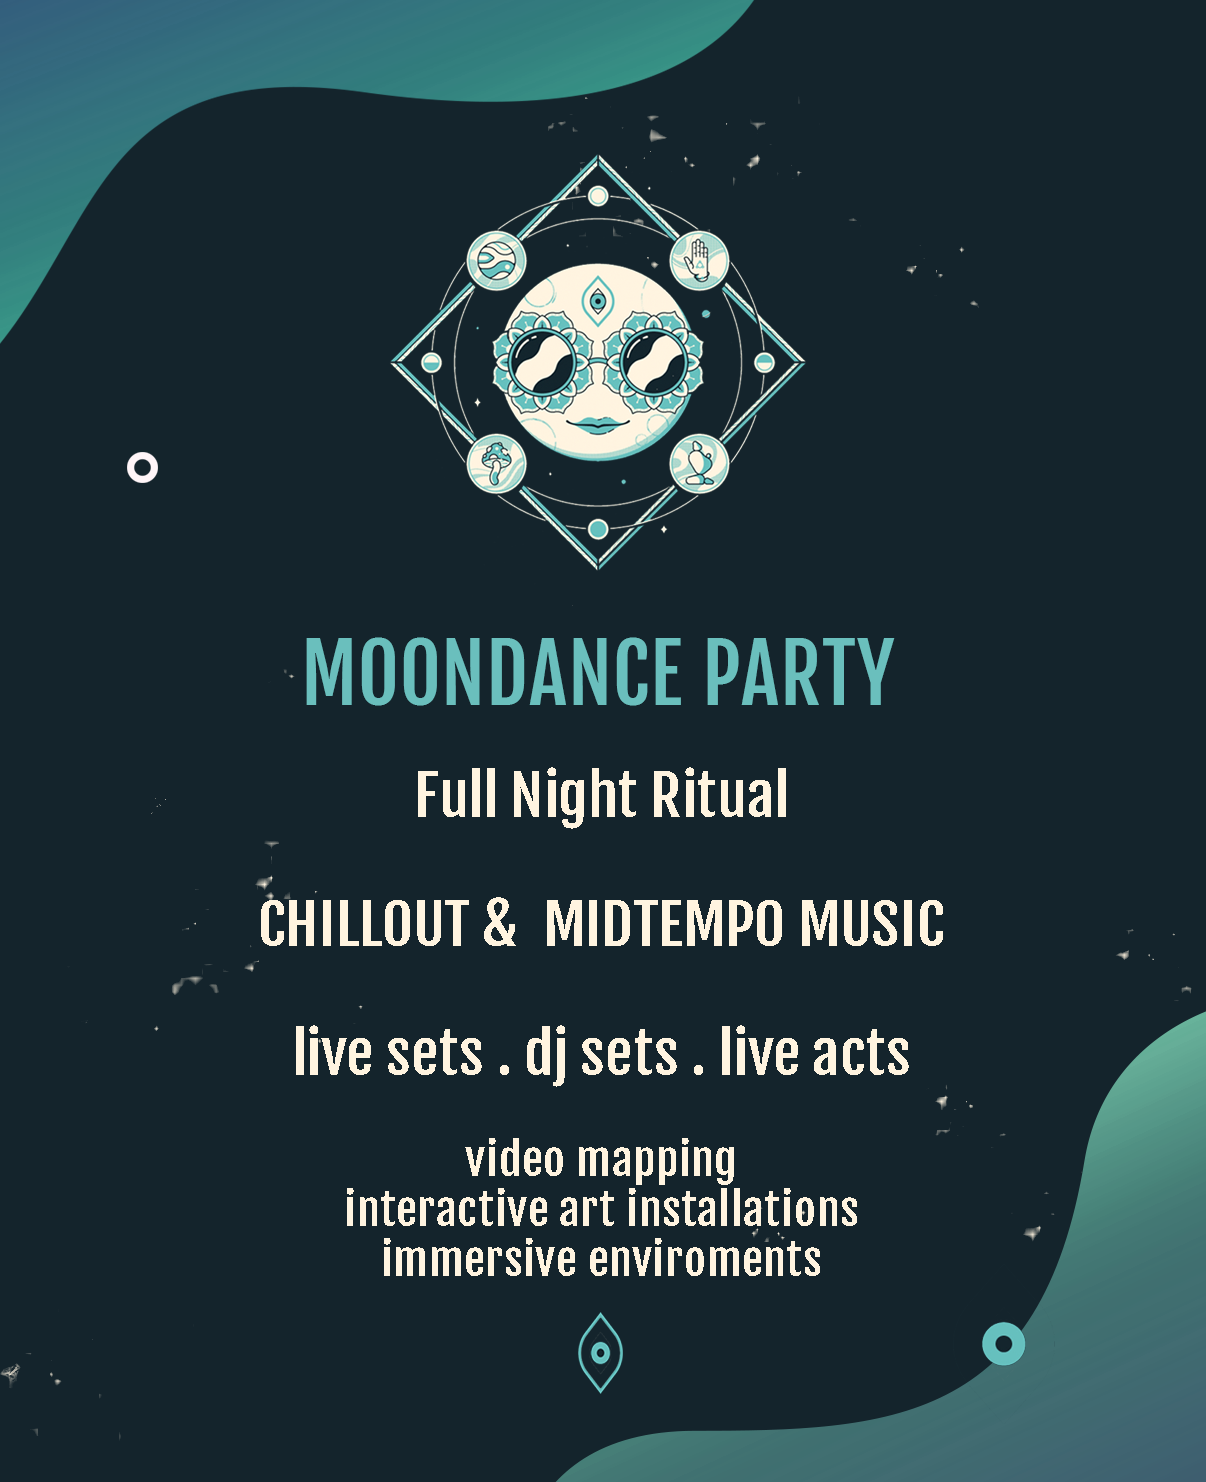 moondance party_etiqueta galeria2